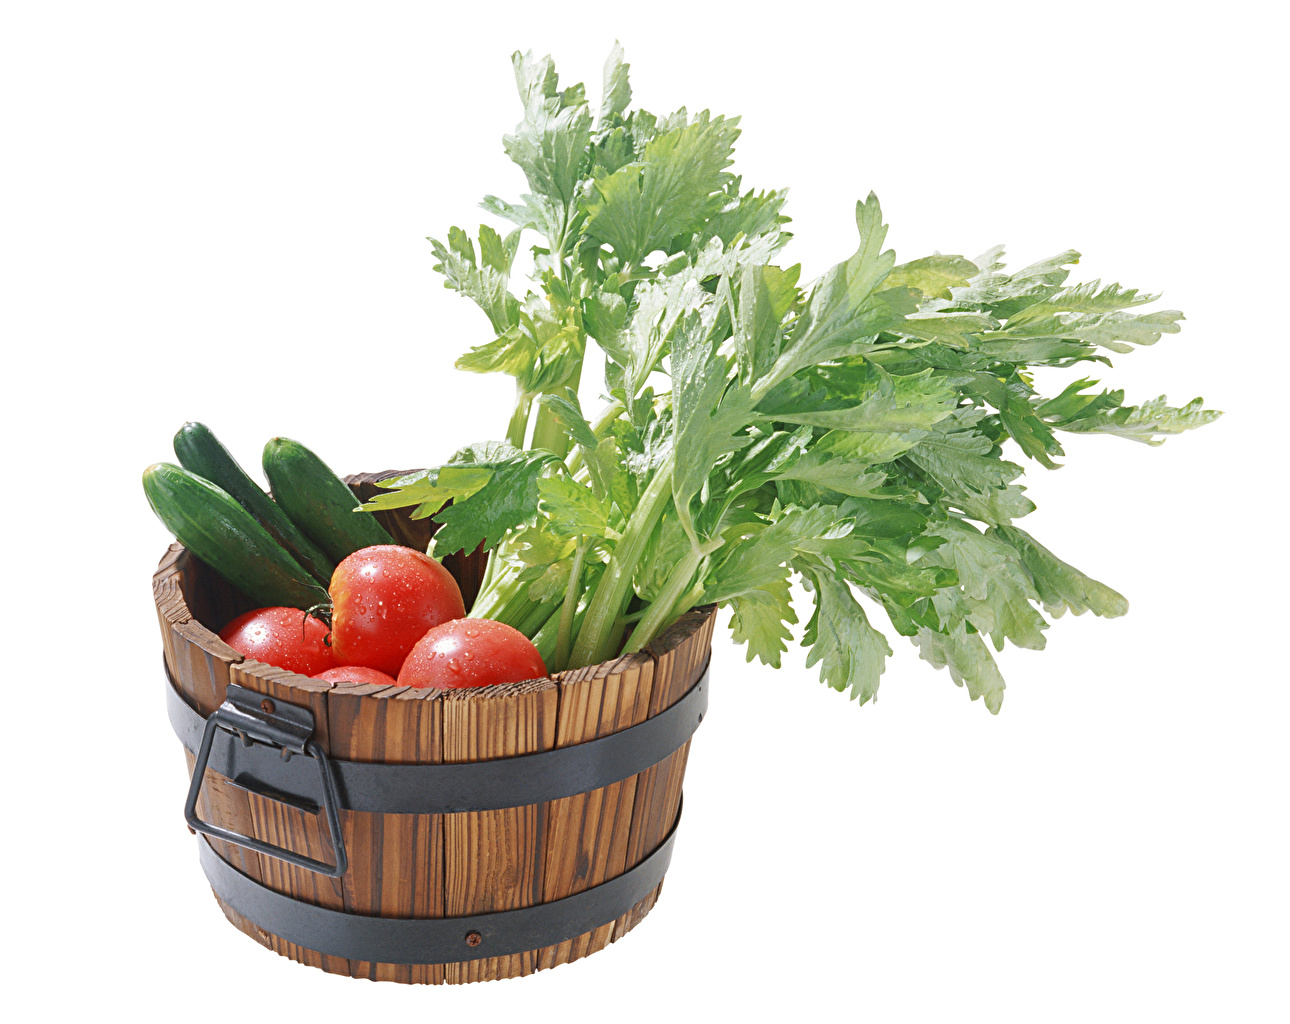 Images Bucket Tomatoes Cucumbers Food Vegetables White background